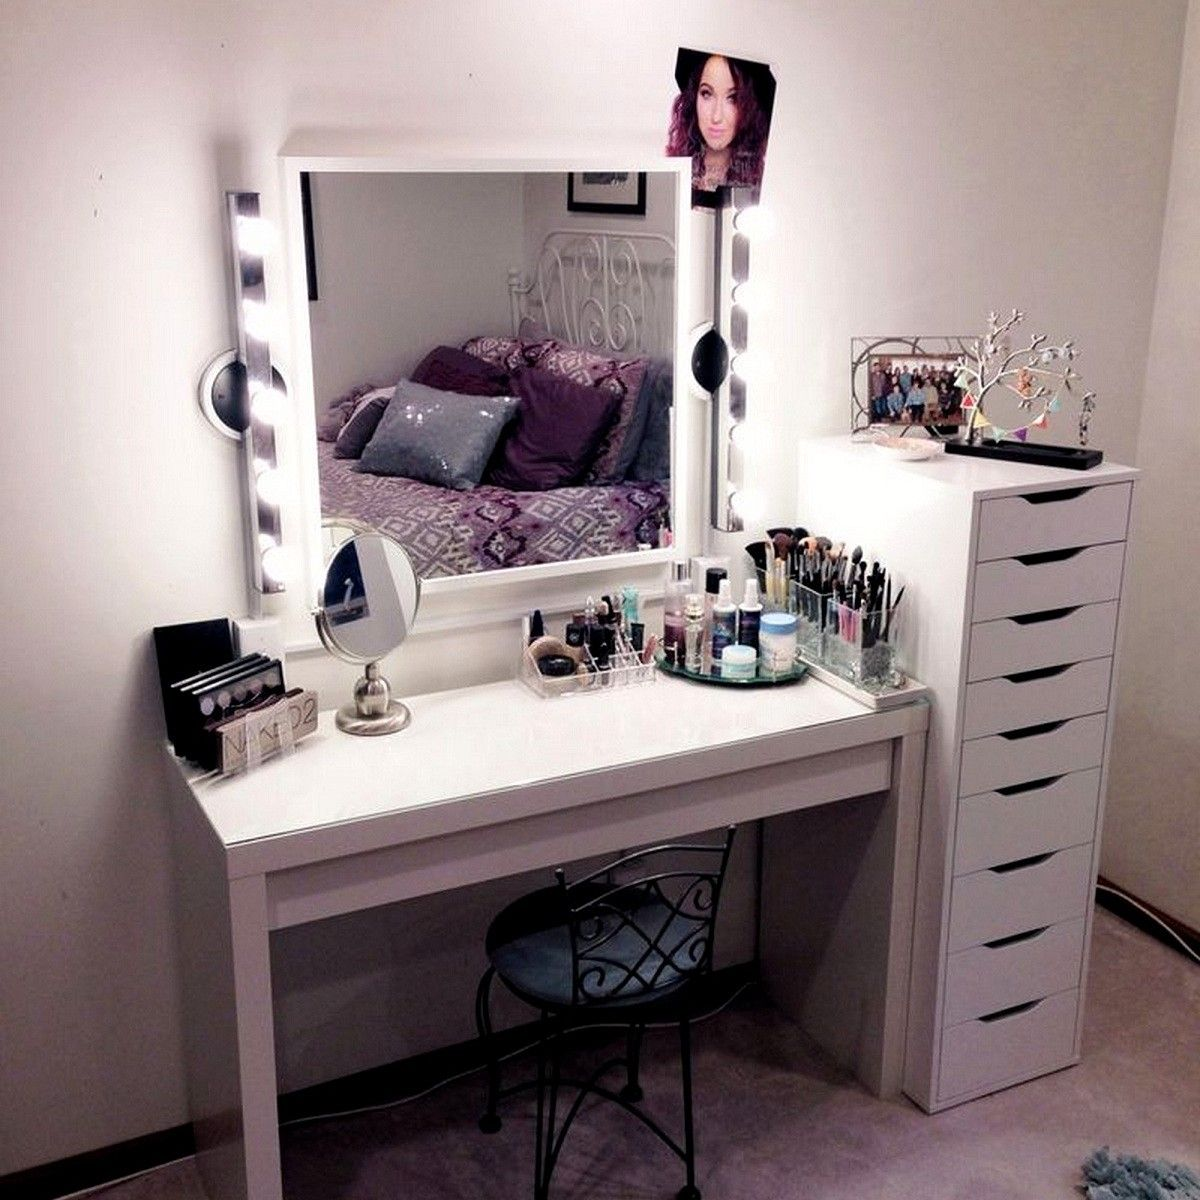 Wonderful Theme Of Vanity Makeup Table With Lights Makeup Table Vanity Makeup Beauty Room Ikea Vanity